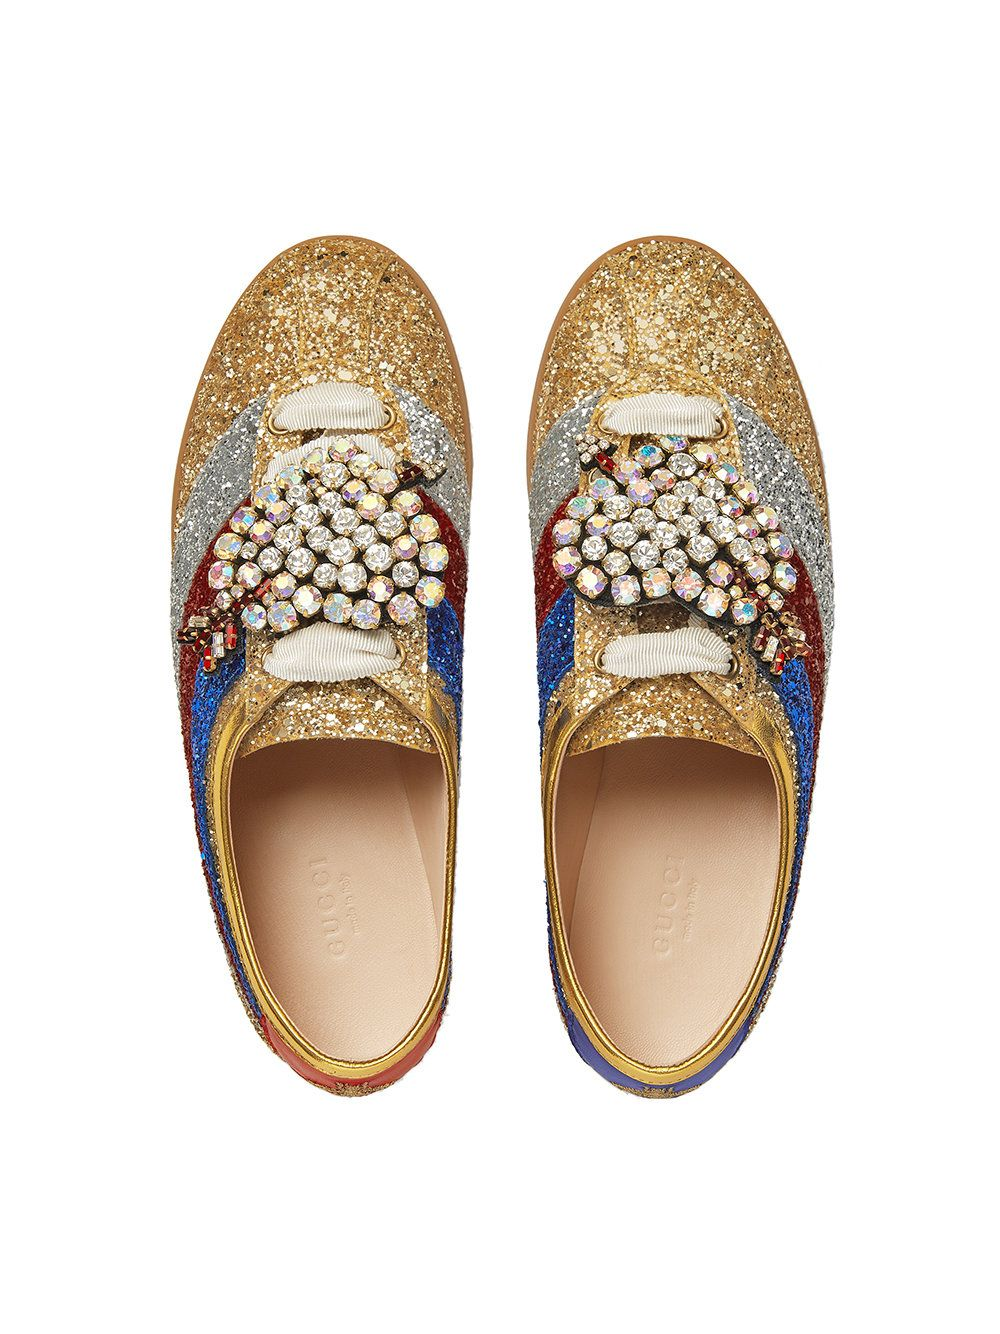 1a912a2eccb Gucci Falacer glitter sneaker with Web. Gucci Falacer glitter sneaker with Web  Red Glitter Shoes ...